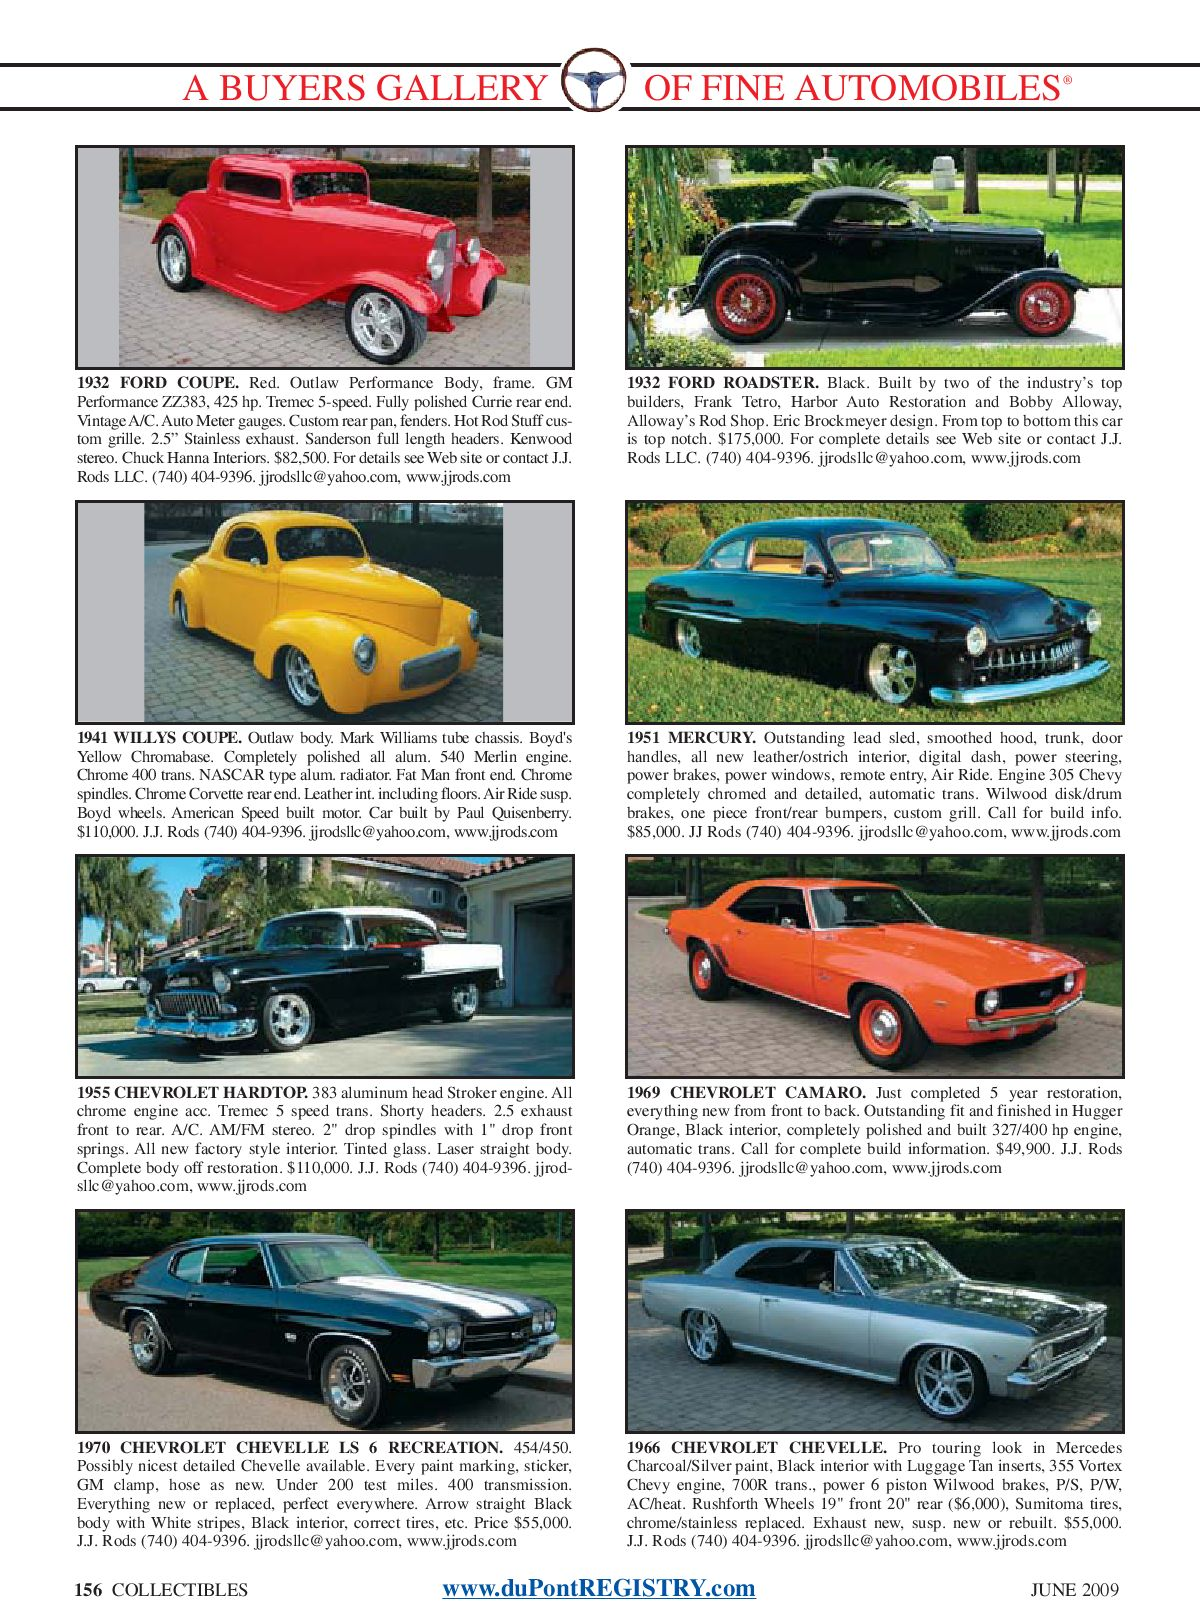 duPontREGISTRY Autos June 2009 by duPont REGISTRY - issuu